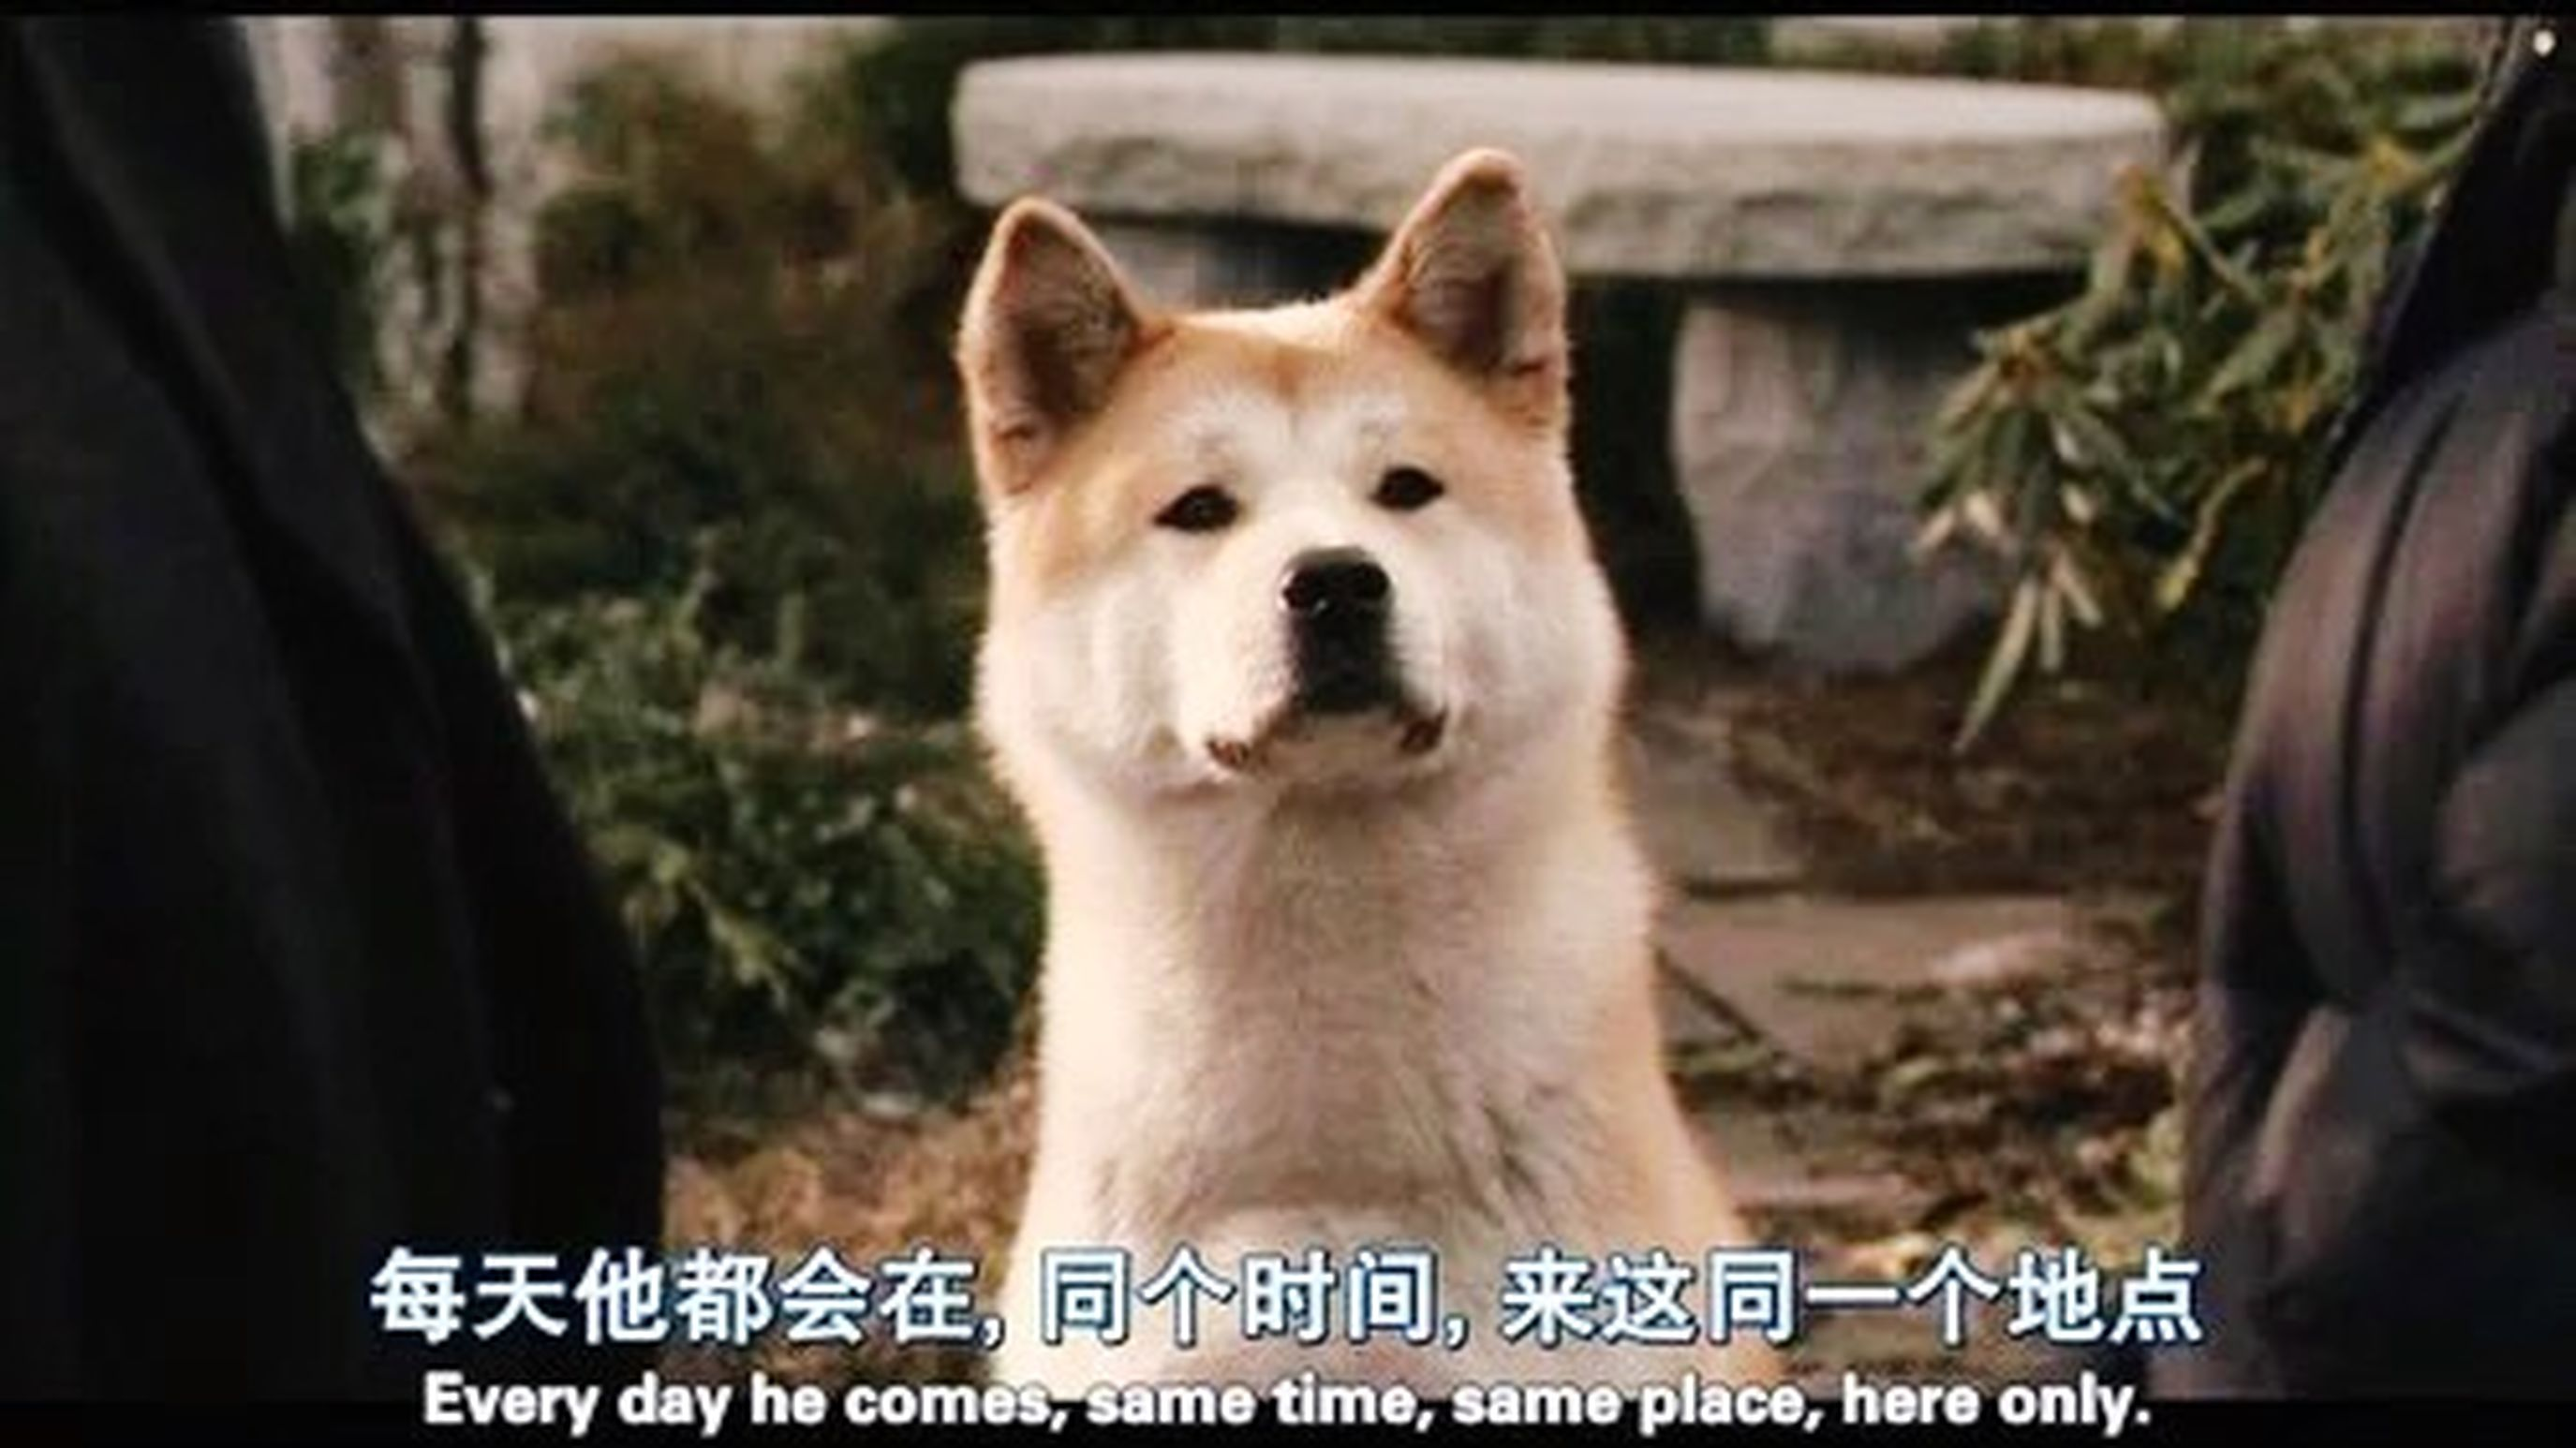 - Are you going with that dog every day? - It's amazing. Every day. ——你每天都跟那狗一起回家呀? ——真不可思议,每天都这样。 ——《#忠犬八公的故事#》